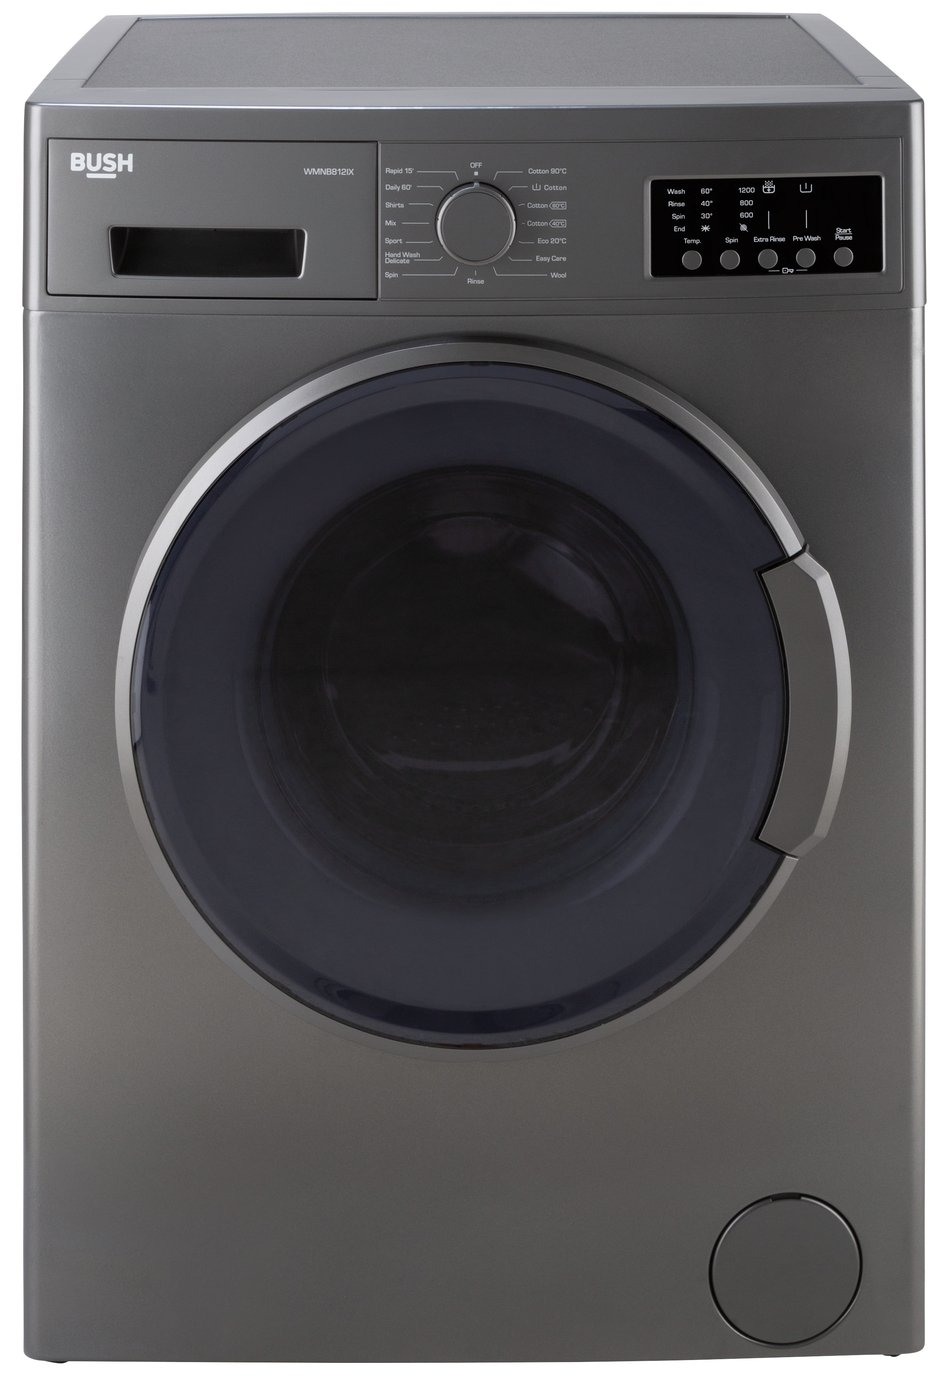 Bush WMNB812IX 8KG 1200 Spin Washing Machine - Inox